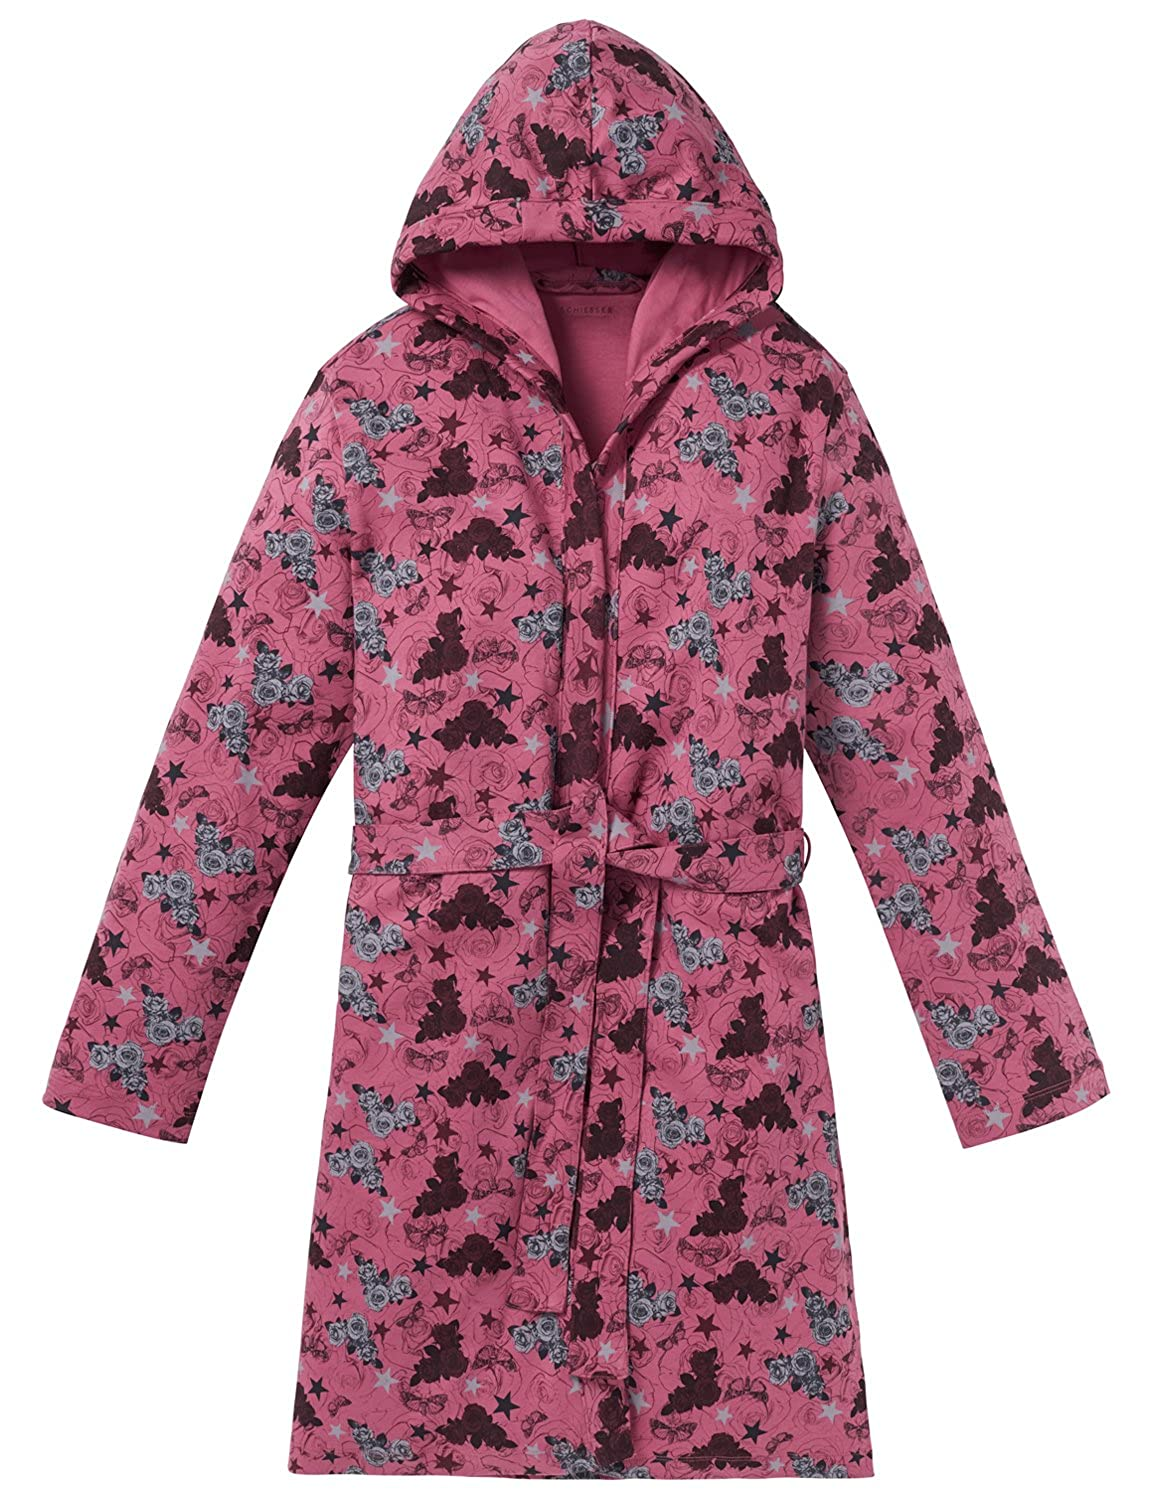 Schiesser Girls Rebel M/ädchen Bademantel Dressing Gown